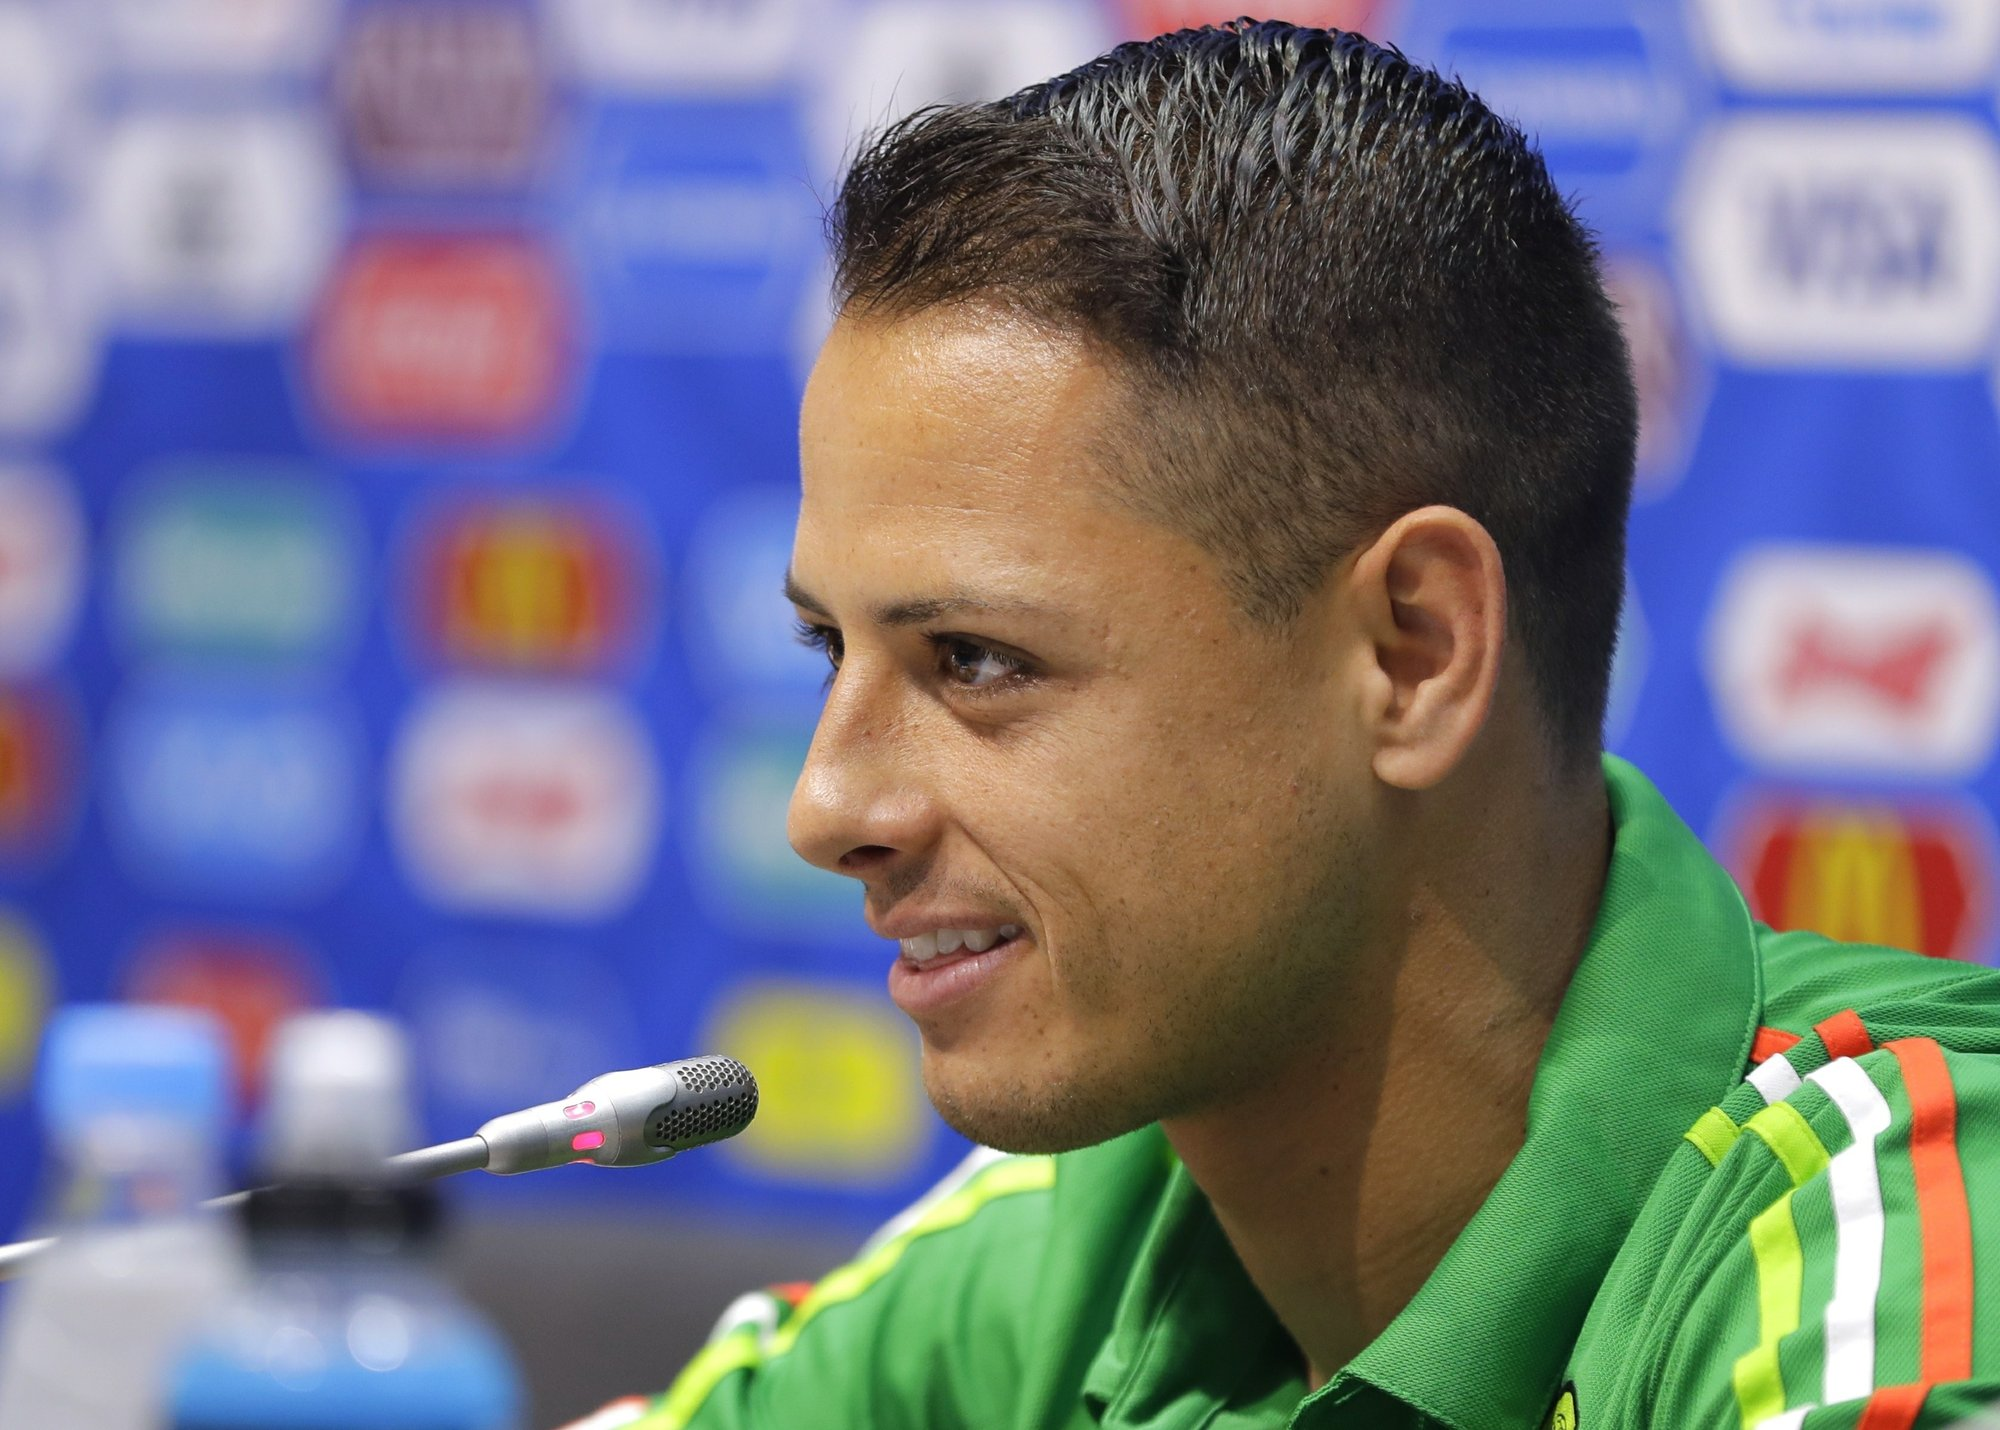 Sevilla signs Mexico striker Chicharito for 3 seasons